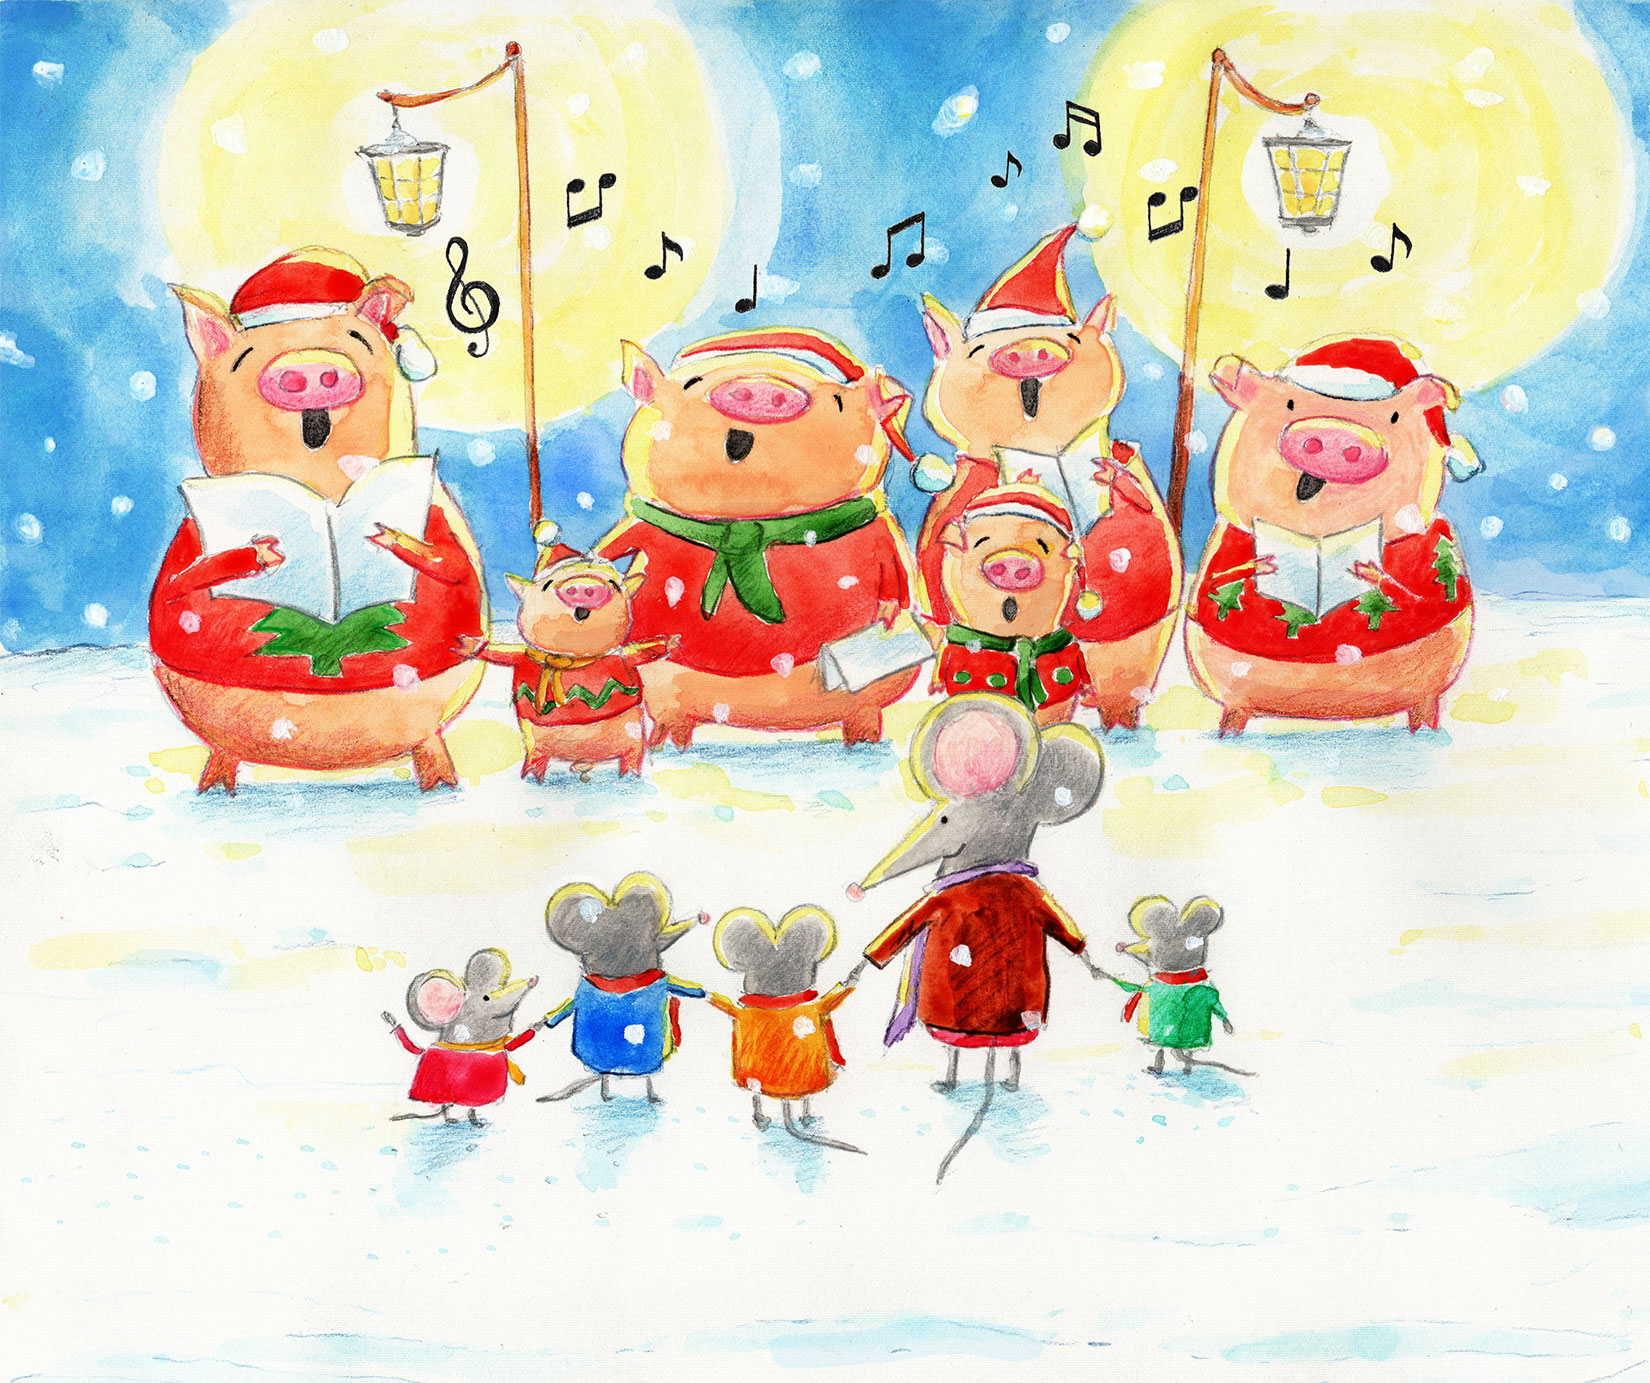 Pigs singing Christmas carols to mice